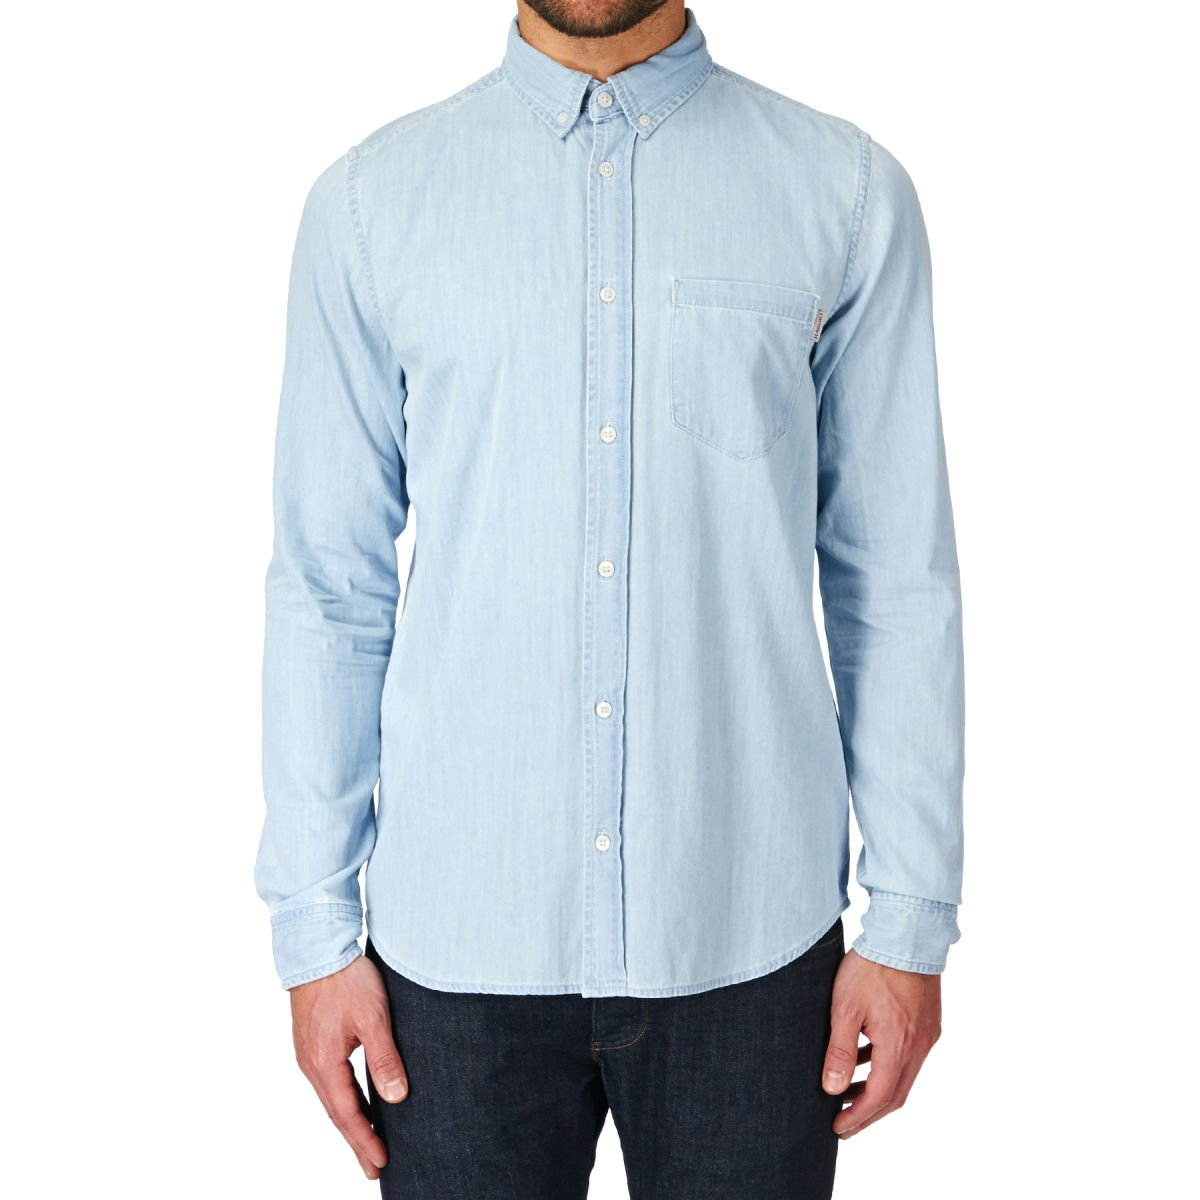 Carhartt Mens Civil Long Sleeve Shirt in Light Blue